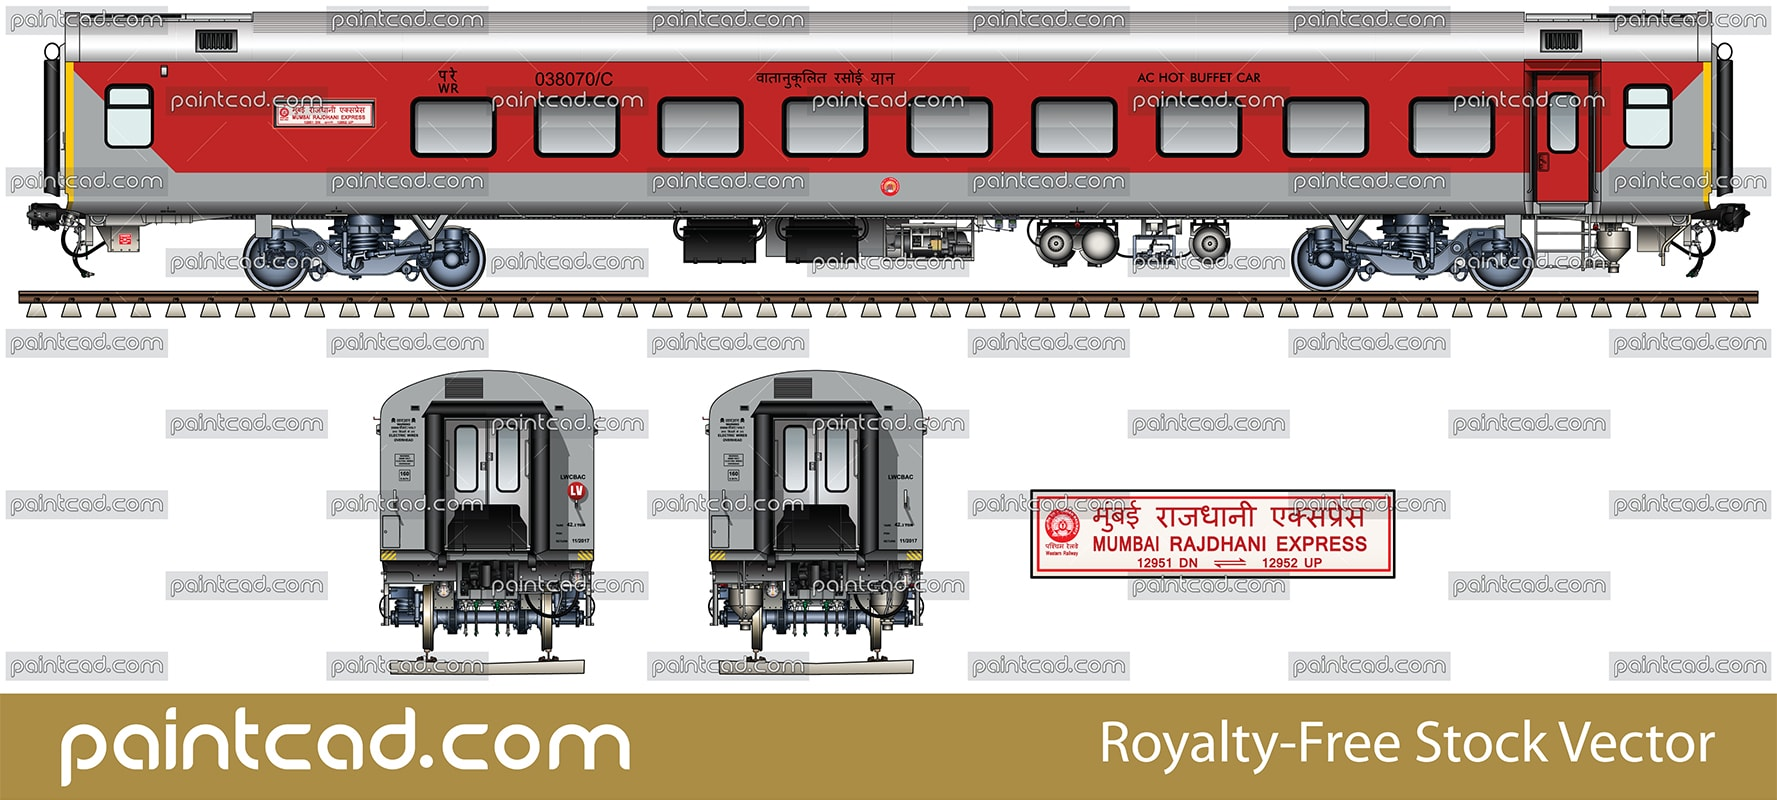 LHB AC hot buffet car by 12951/ 12952 Mumbai Rajdhani Express - vector illustration